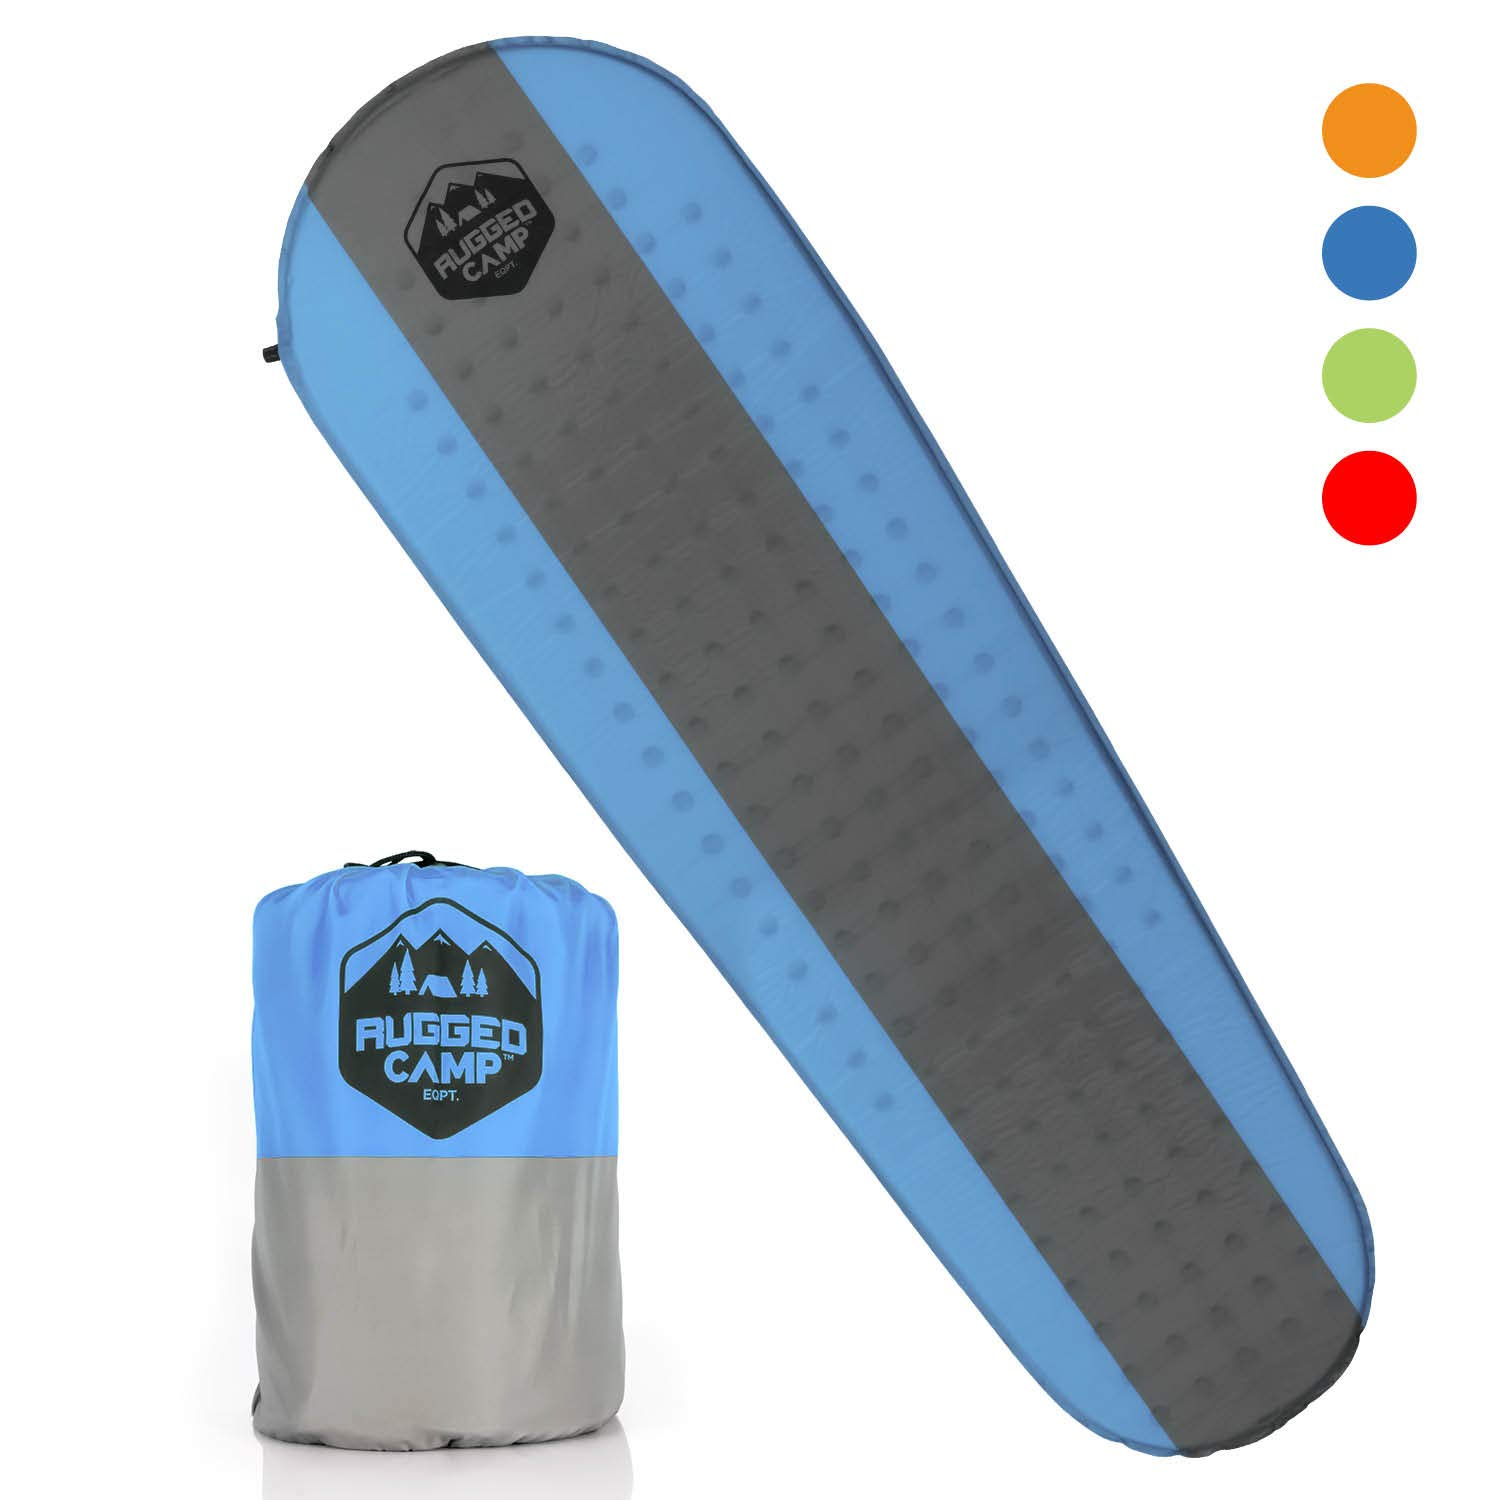 Rugged Camp Self Inflating Sleeping Pad - Sleep Comfortably in The Outdoors - Camping Gear and Accessories for Hiking, Backpacking, Travel - Lightweight and Compact Camping Mat (Blue) by Rugged Camp